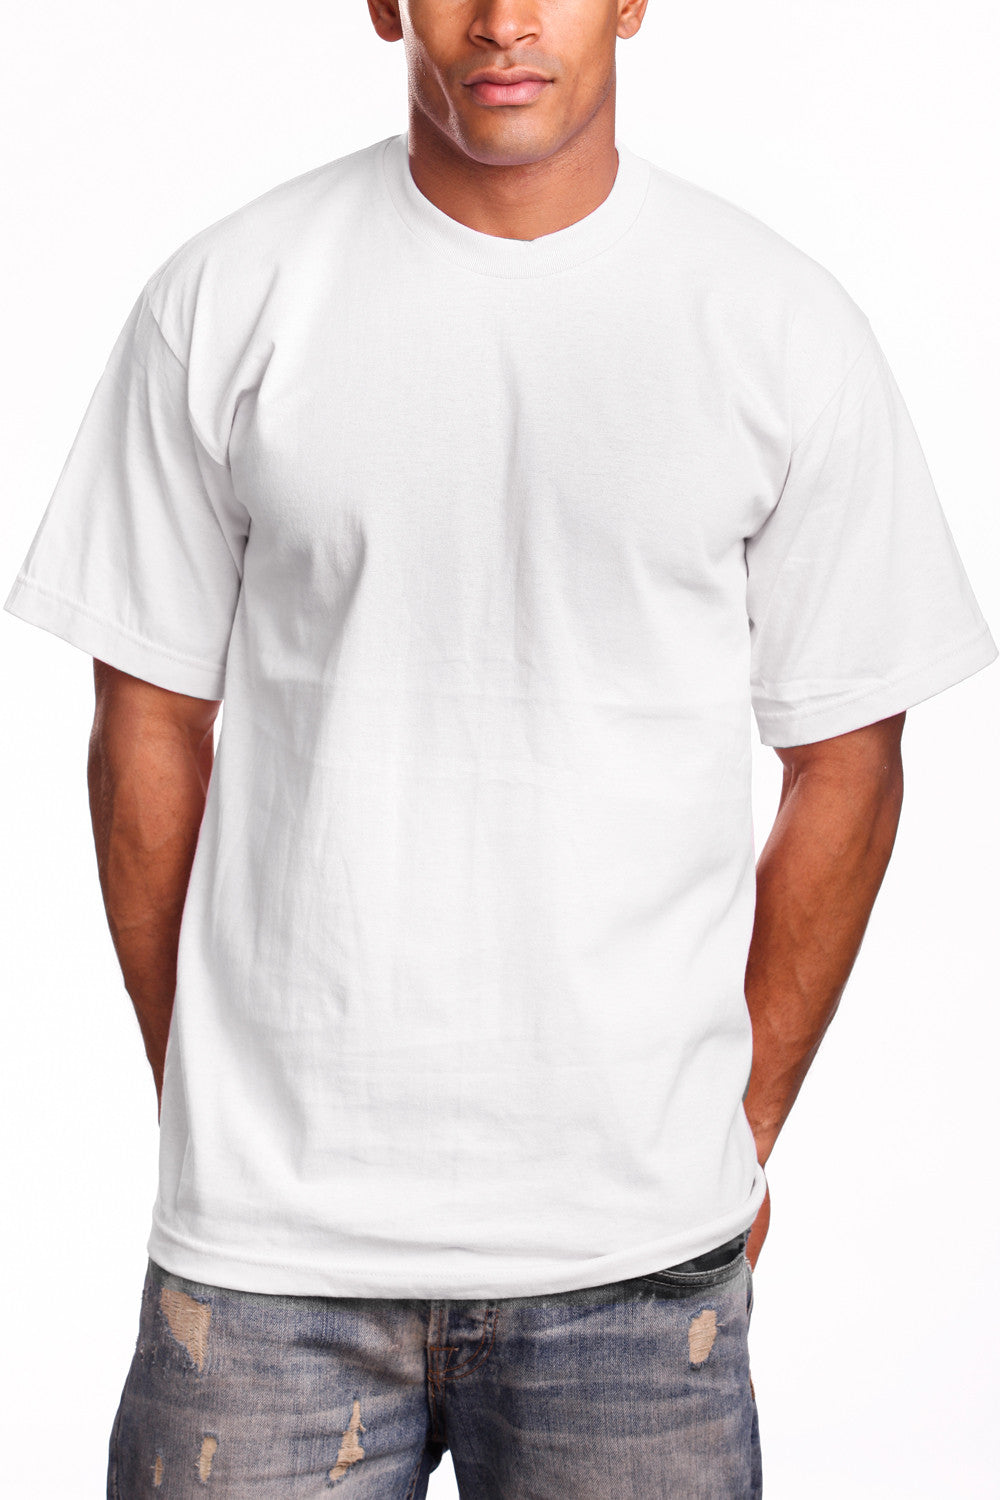 Athletic Fit T-Shirts-White - Pro 5 Apparel